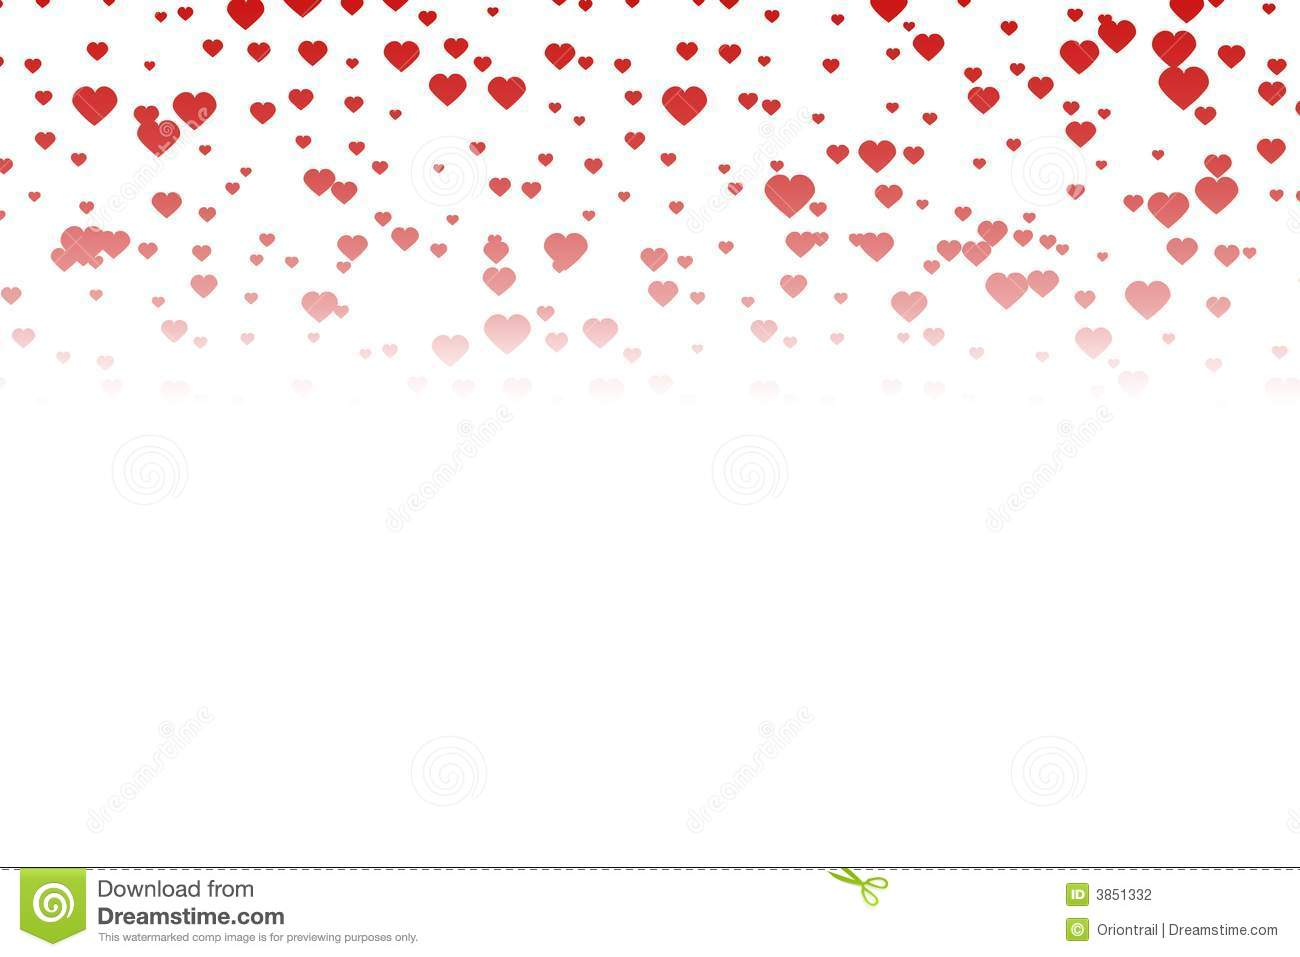 Rose Petals Falling Wallpaper Transparent Gif Small Hearts Background Stock Photography Image 3851332